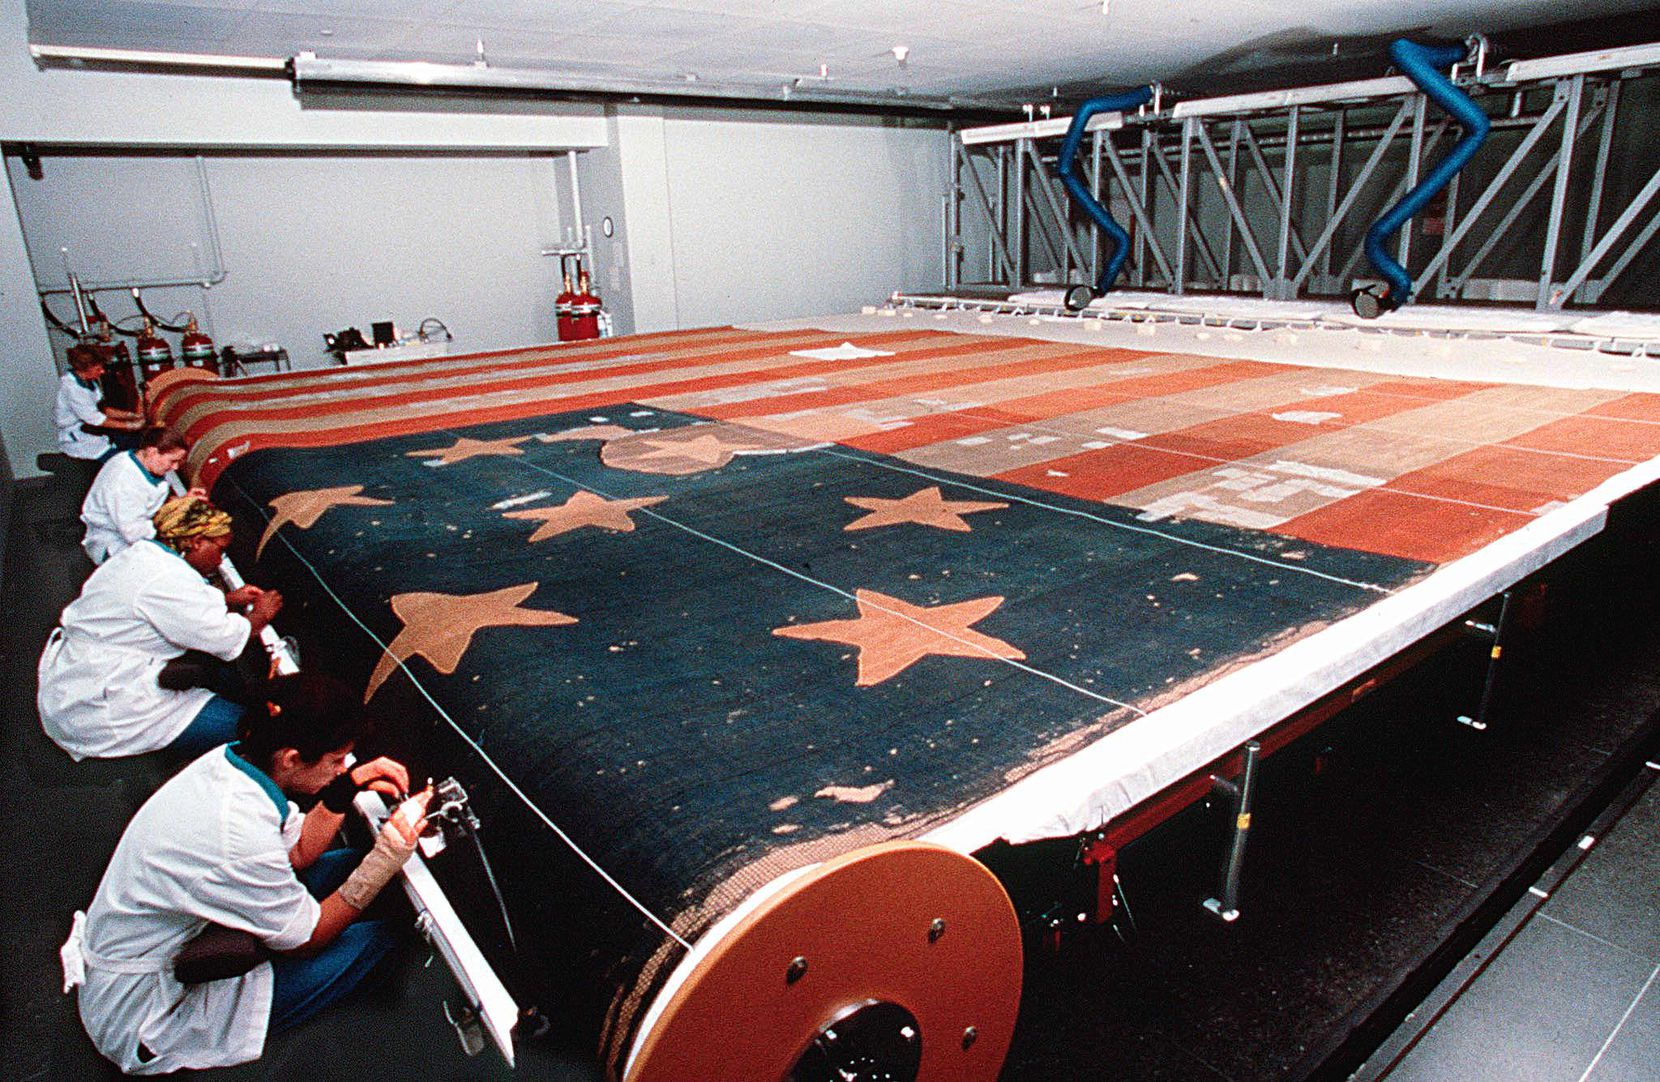 A photo released by Smithsonian Institution shows curators restoring the Star-Spangled Banner, the flag that inspired the words of the National Anthem, at the National Museum of American History. On June 14, 2001, Flag Day, conservators concluded that the 208-year-old flag was more fragile than originally believed and would have to be displayed to the public on a slight incline that would protect the fabric from stress.